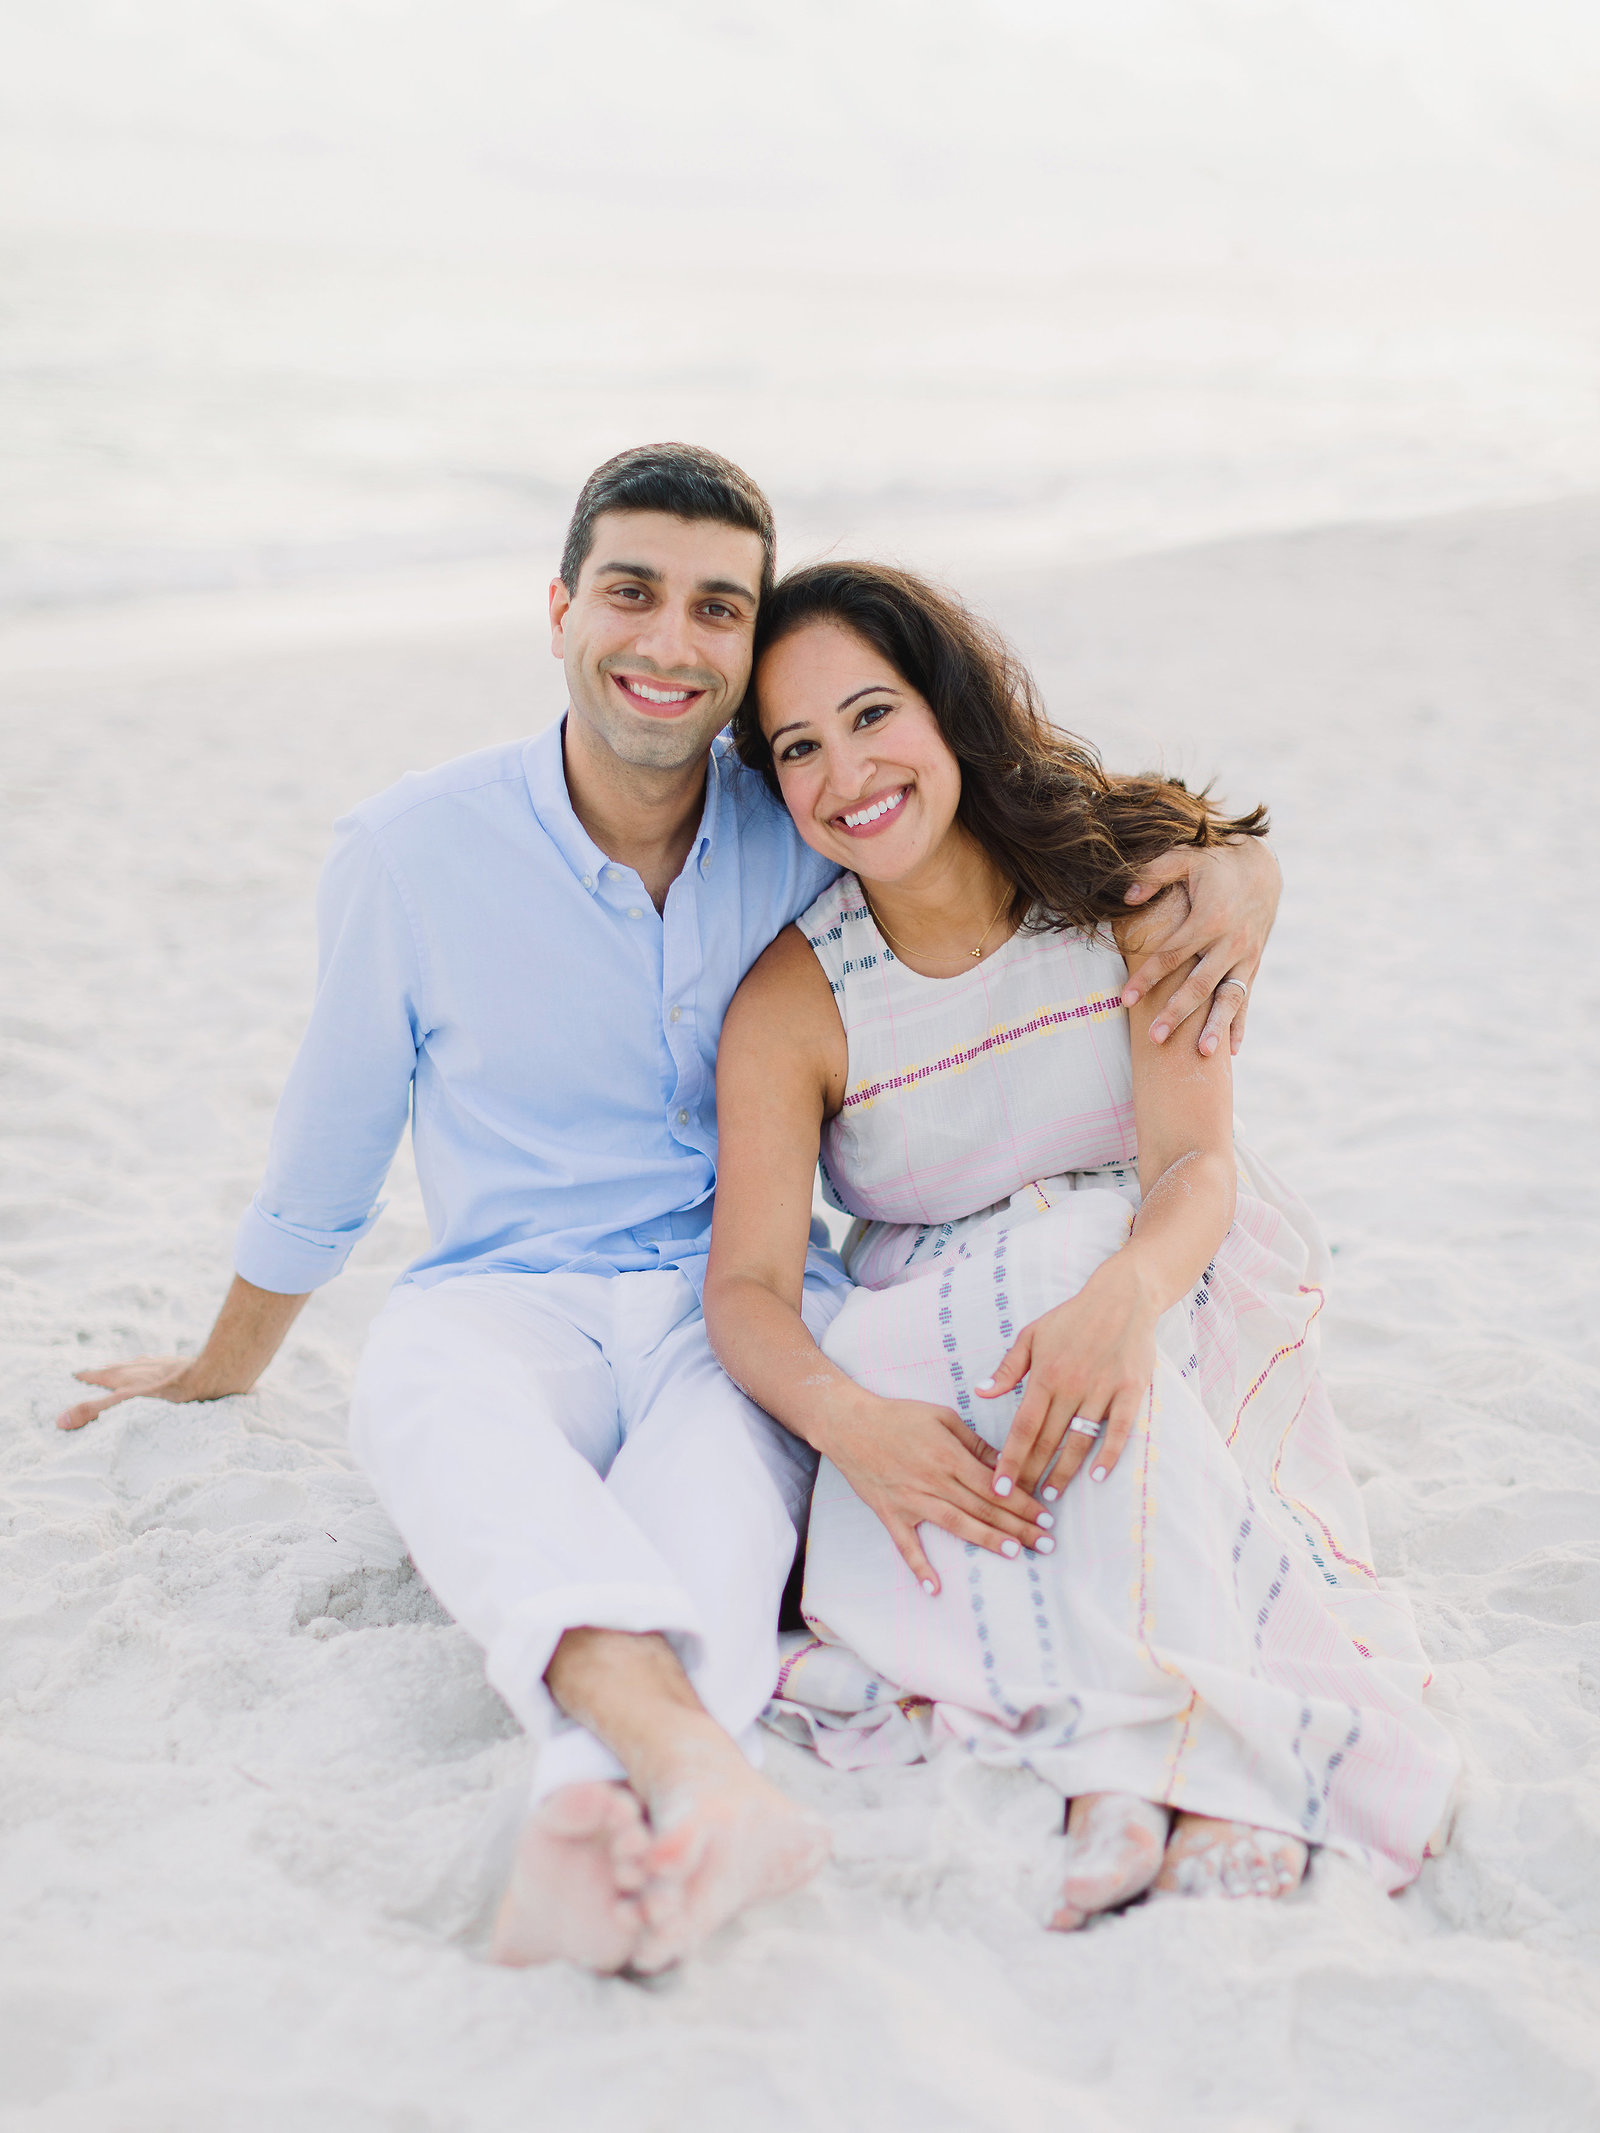 Alys Beach Family Photography Rosemary Beach 30A Photographer